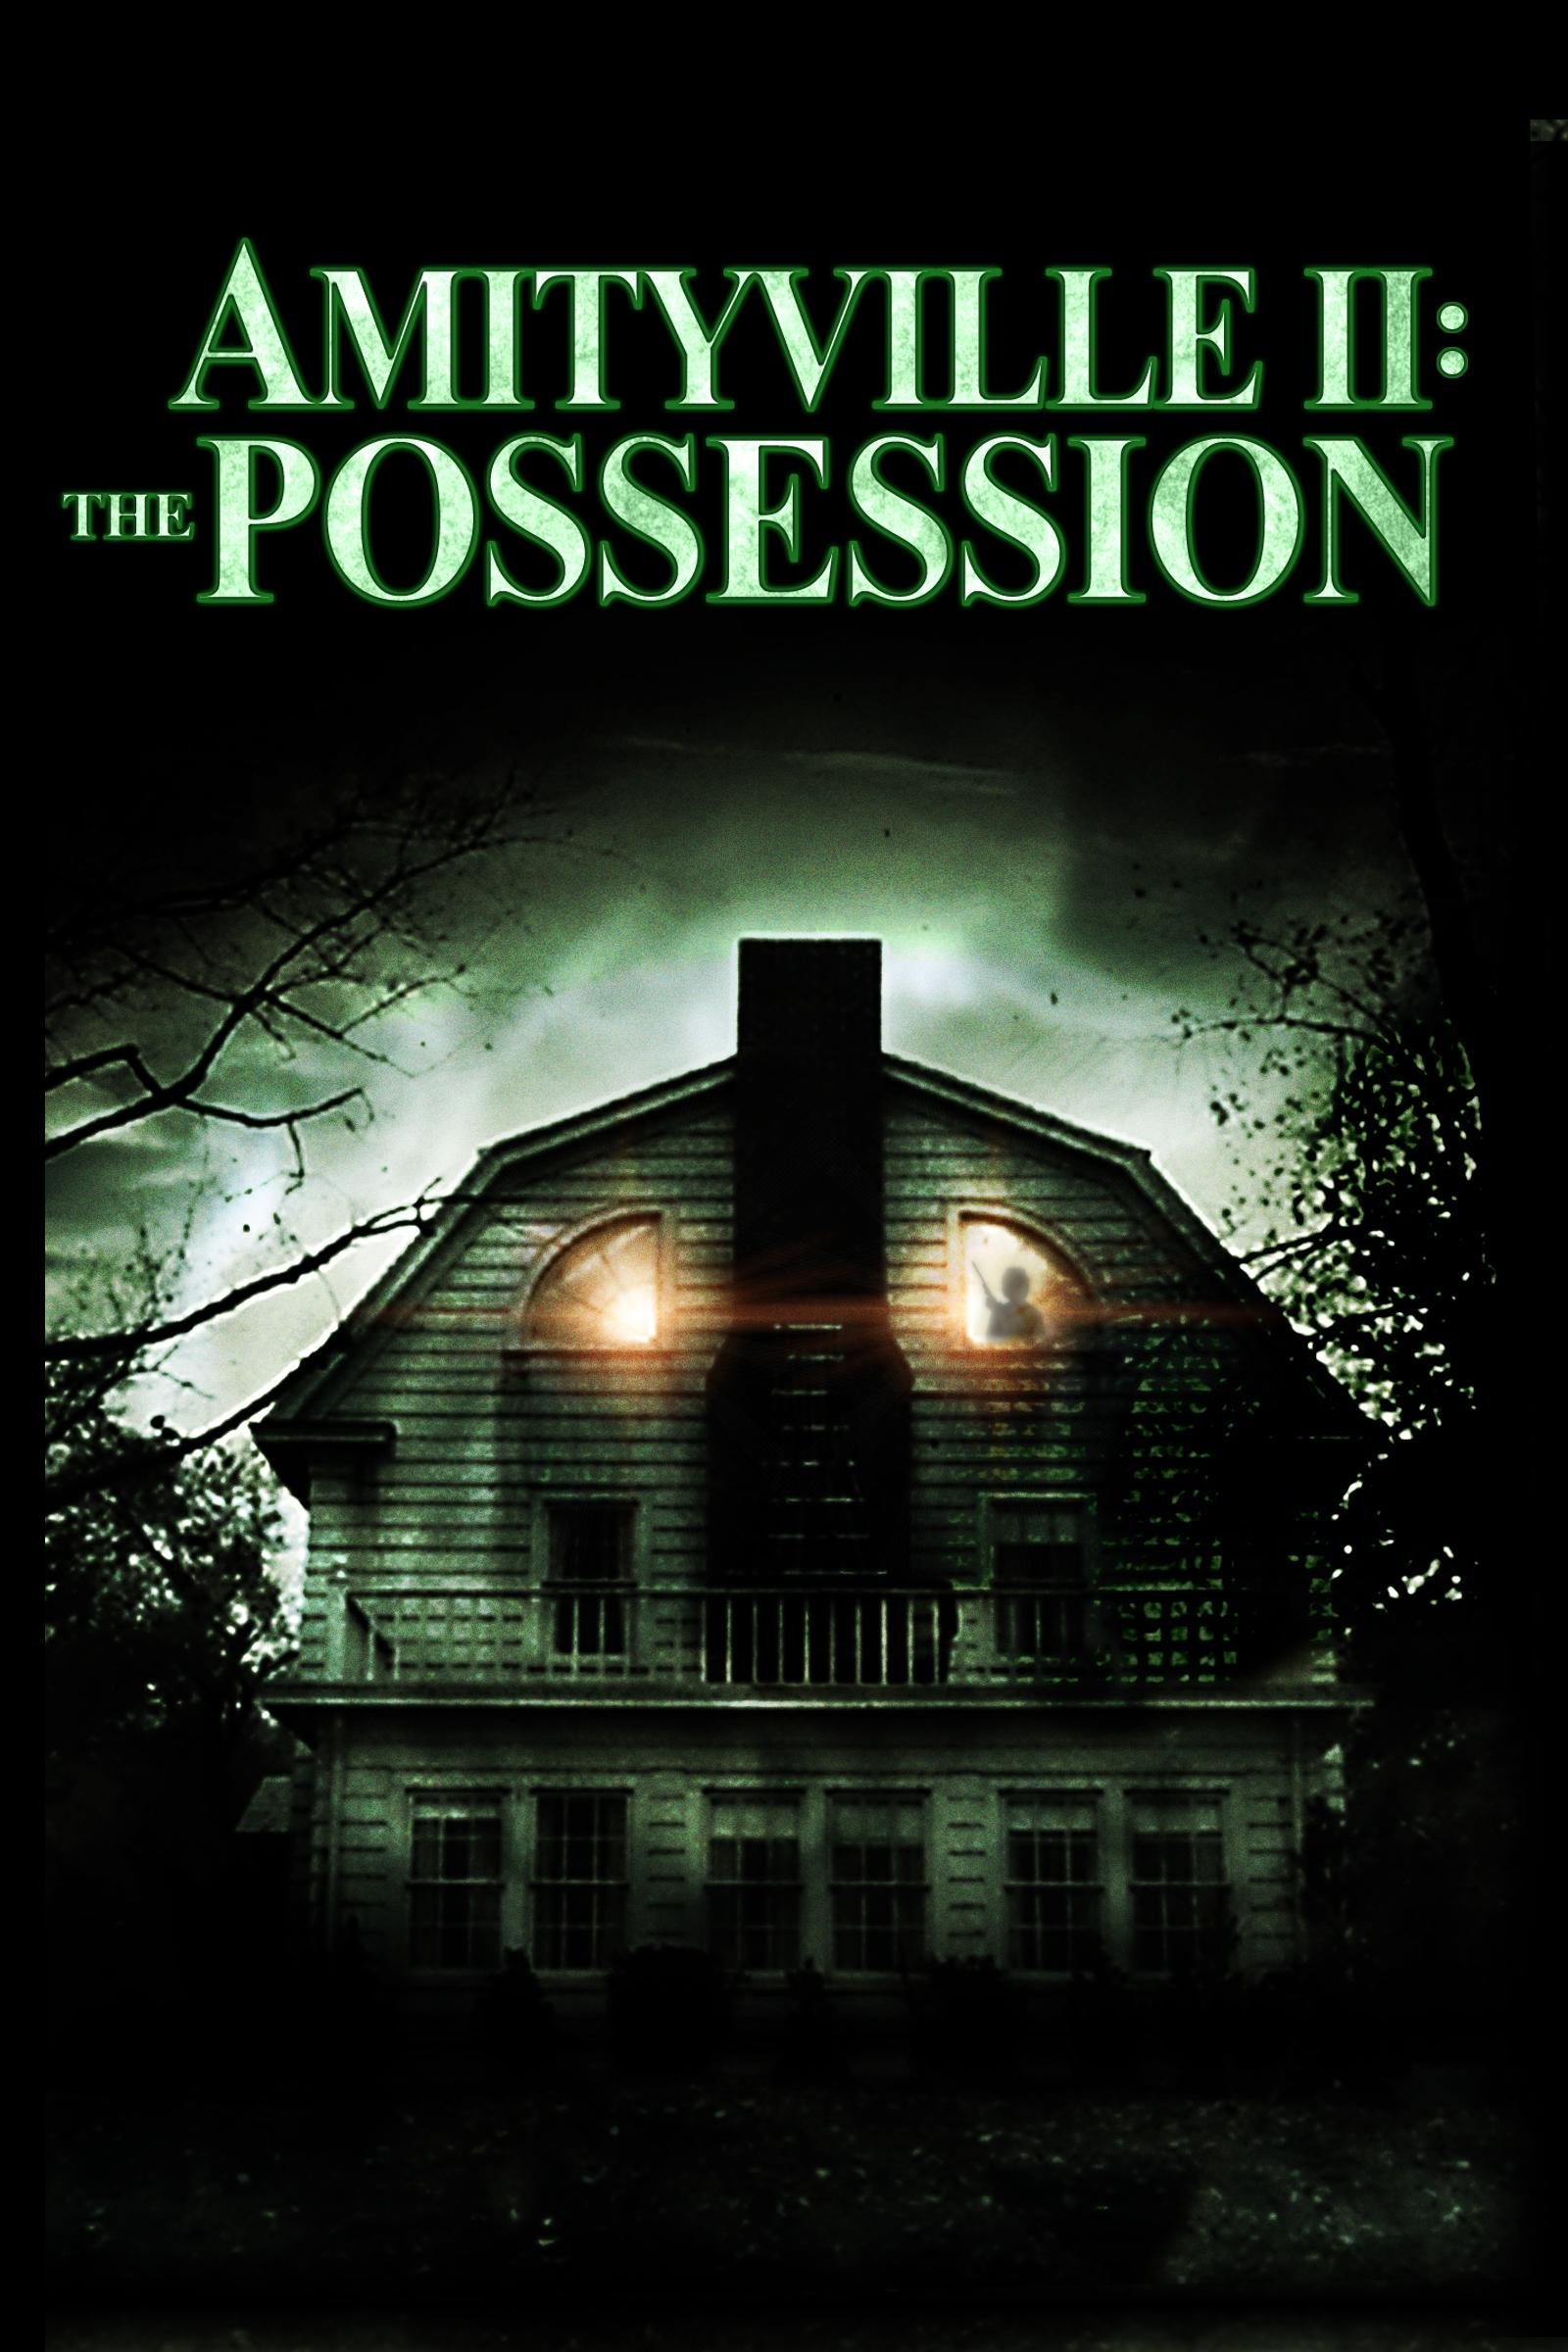 amityville ii the possession full movie watch online